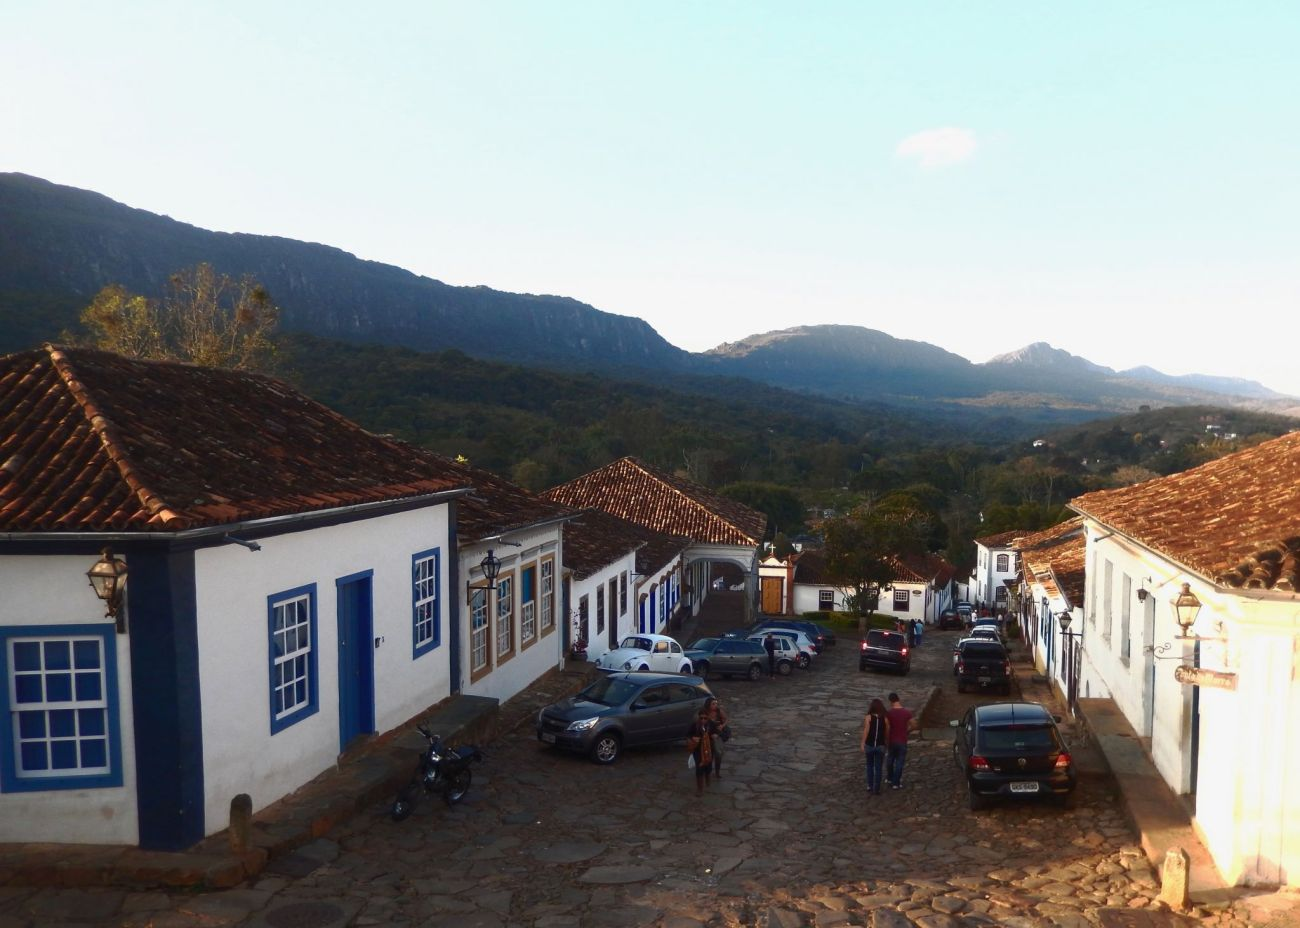 Tiradentes, Minas Gerais- Footloose Lemon Juice .jpg